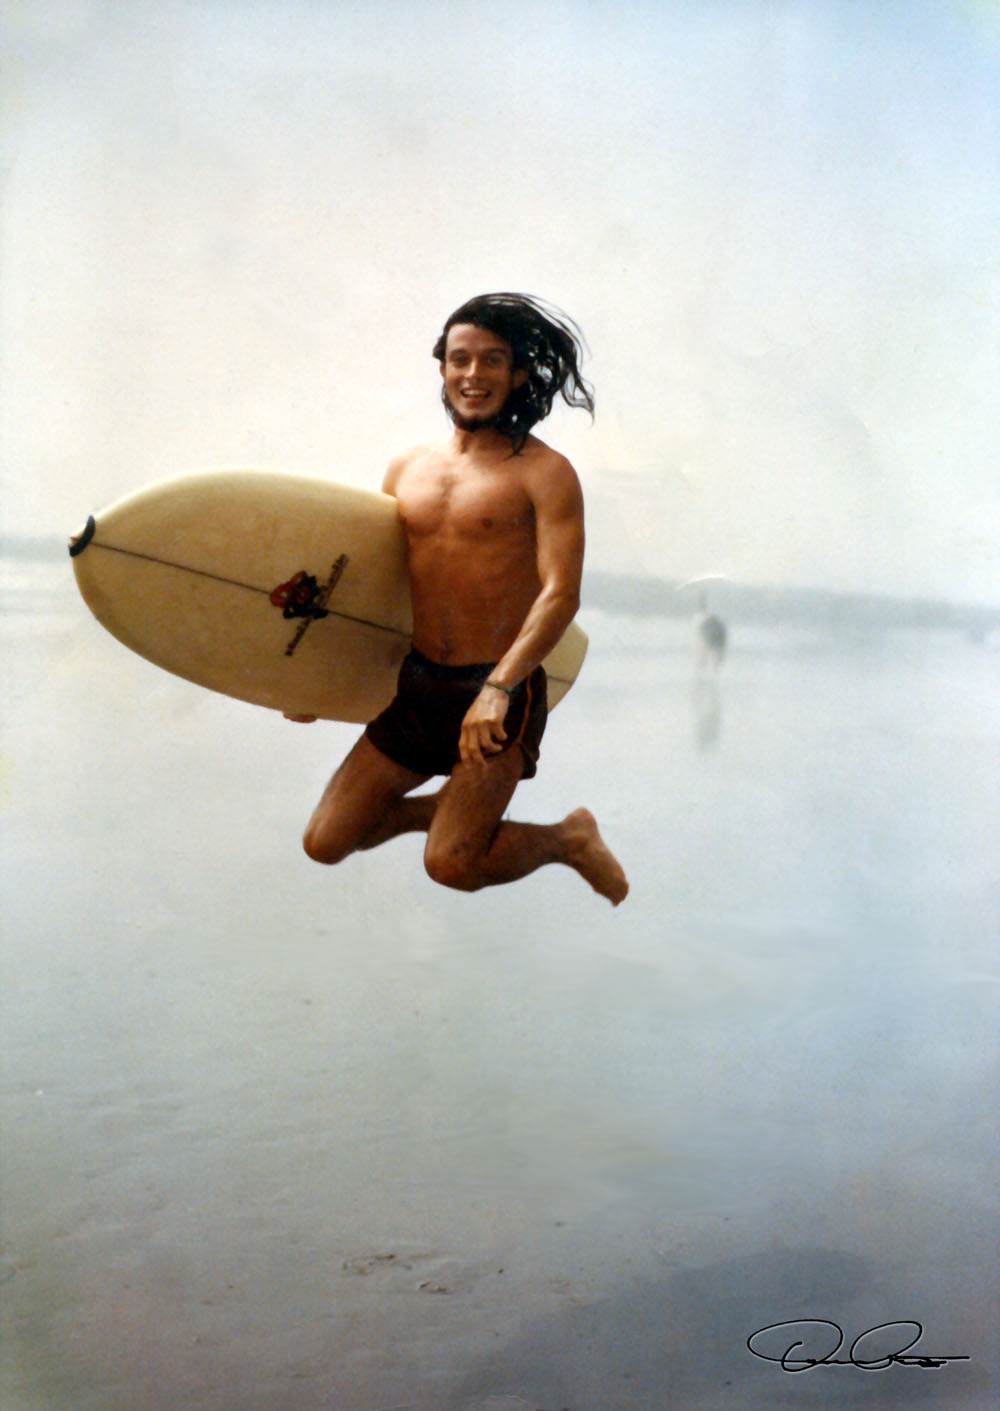 """Here I am ... surfing Ocean City, New Jersey back in 1974 ... with my Plastic Fantastic board that I bought off of """"Mel"""".    And, that blue surfboard on our Loggish Spear logo?   Got it from Mel: it was my 1975 Christmas present from my parents ...  as I had no board, as the Plastic Fantastic I had been riding died of a bad case of """"tail rot"""".  The  Loggish Spear  was a dove-tailed winger Mel had made at  Heritage Surfboards  in Sea Isle City, New Jersey. On the first day he rode it, the board got loose; and someone rode over the board and put a nasty cut in the rail with their fin (above the 'Spear' on our logo) ... so Mel was glad to get rid of that  Cursed Board . And, Steve named it, the  """"Loggish Spear"""",  back in 1976. It rode like dung on most days, but when it got big, it carved some great turns, backside. I took it to Hatteras during a bus-ride/hitchhike adventure down North Carolina Highway 12 during the early spring of 1976 ... while the rest of my family went skiing at Mont-Tremblant in Canada.  From the age of three, I was a skier, too.  As, also was Mel.  See two Dutch maps, Middleburg and Zeeland, Netherlands ( Middleburg, Holland  and  Zeeland Province [1], Holland  and  Zeelandia Province [2], Holland ). Lived in Middleburg and Scheveningen from 1967 to 1969; and went to the a DuPont-sponsored school in Dordrecht, Holland and then the American School of the International School of The Hague, Netherlands."""